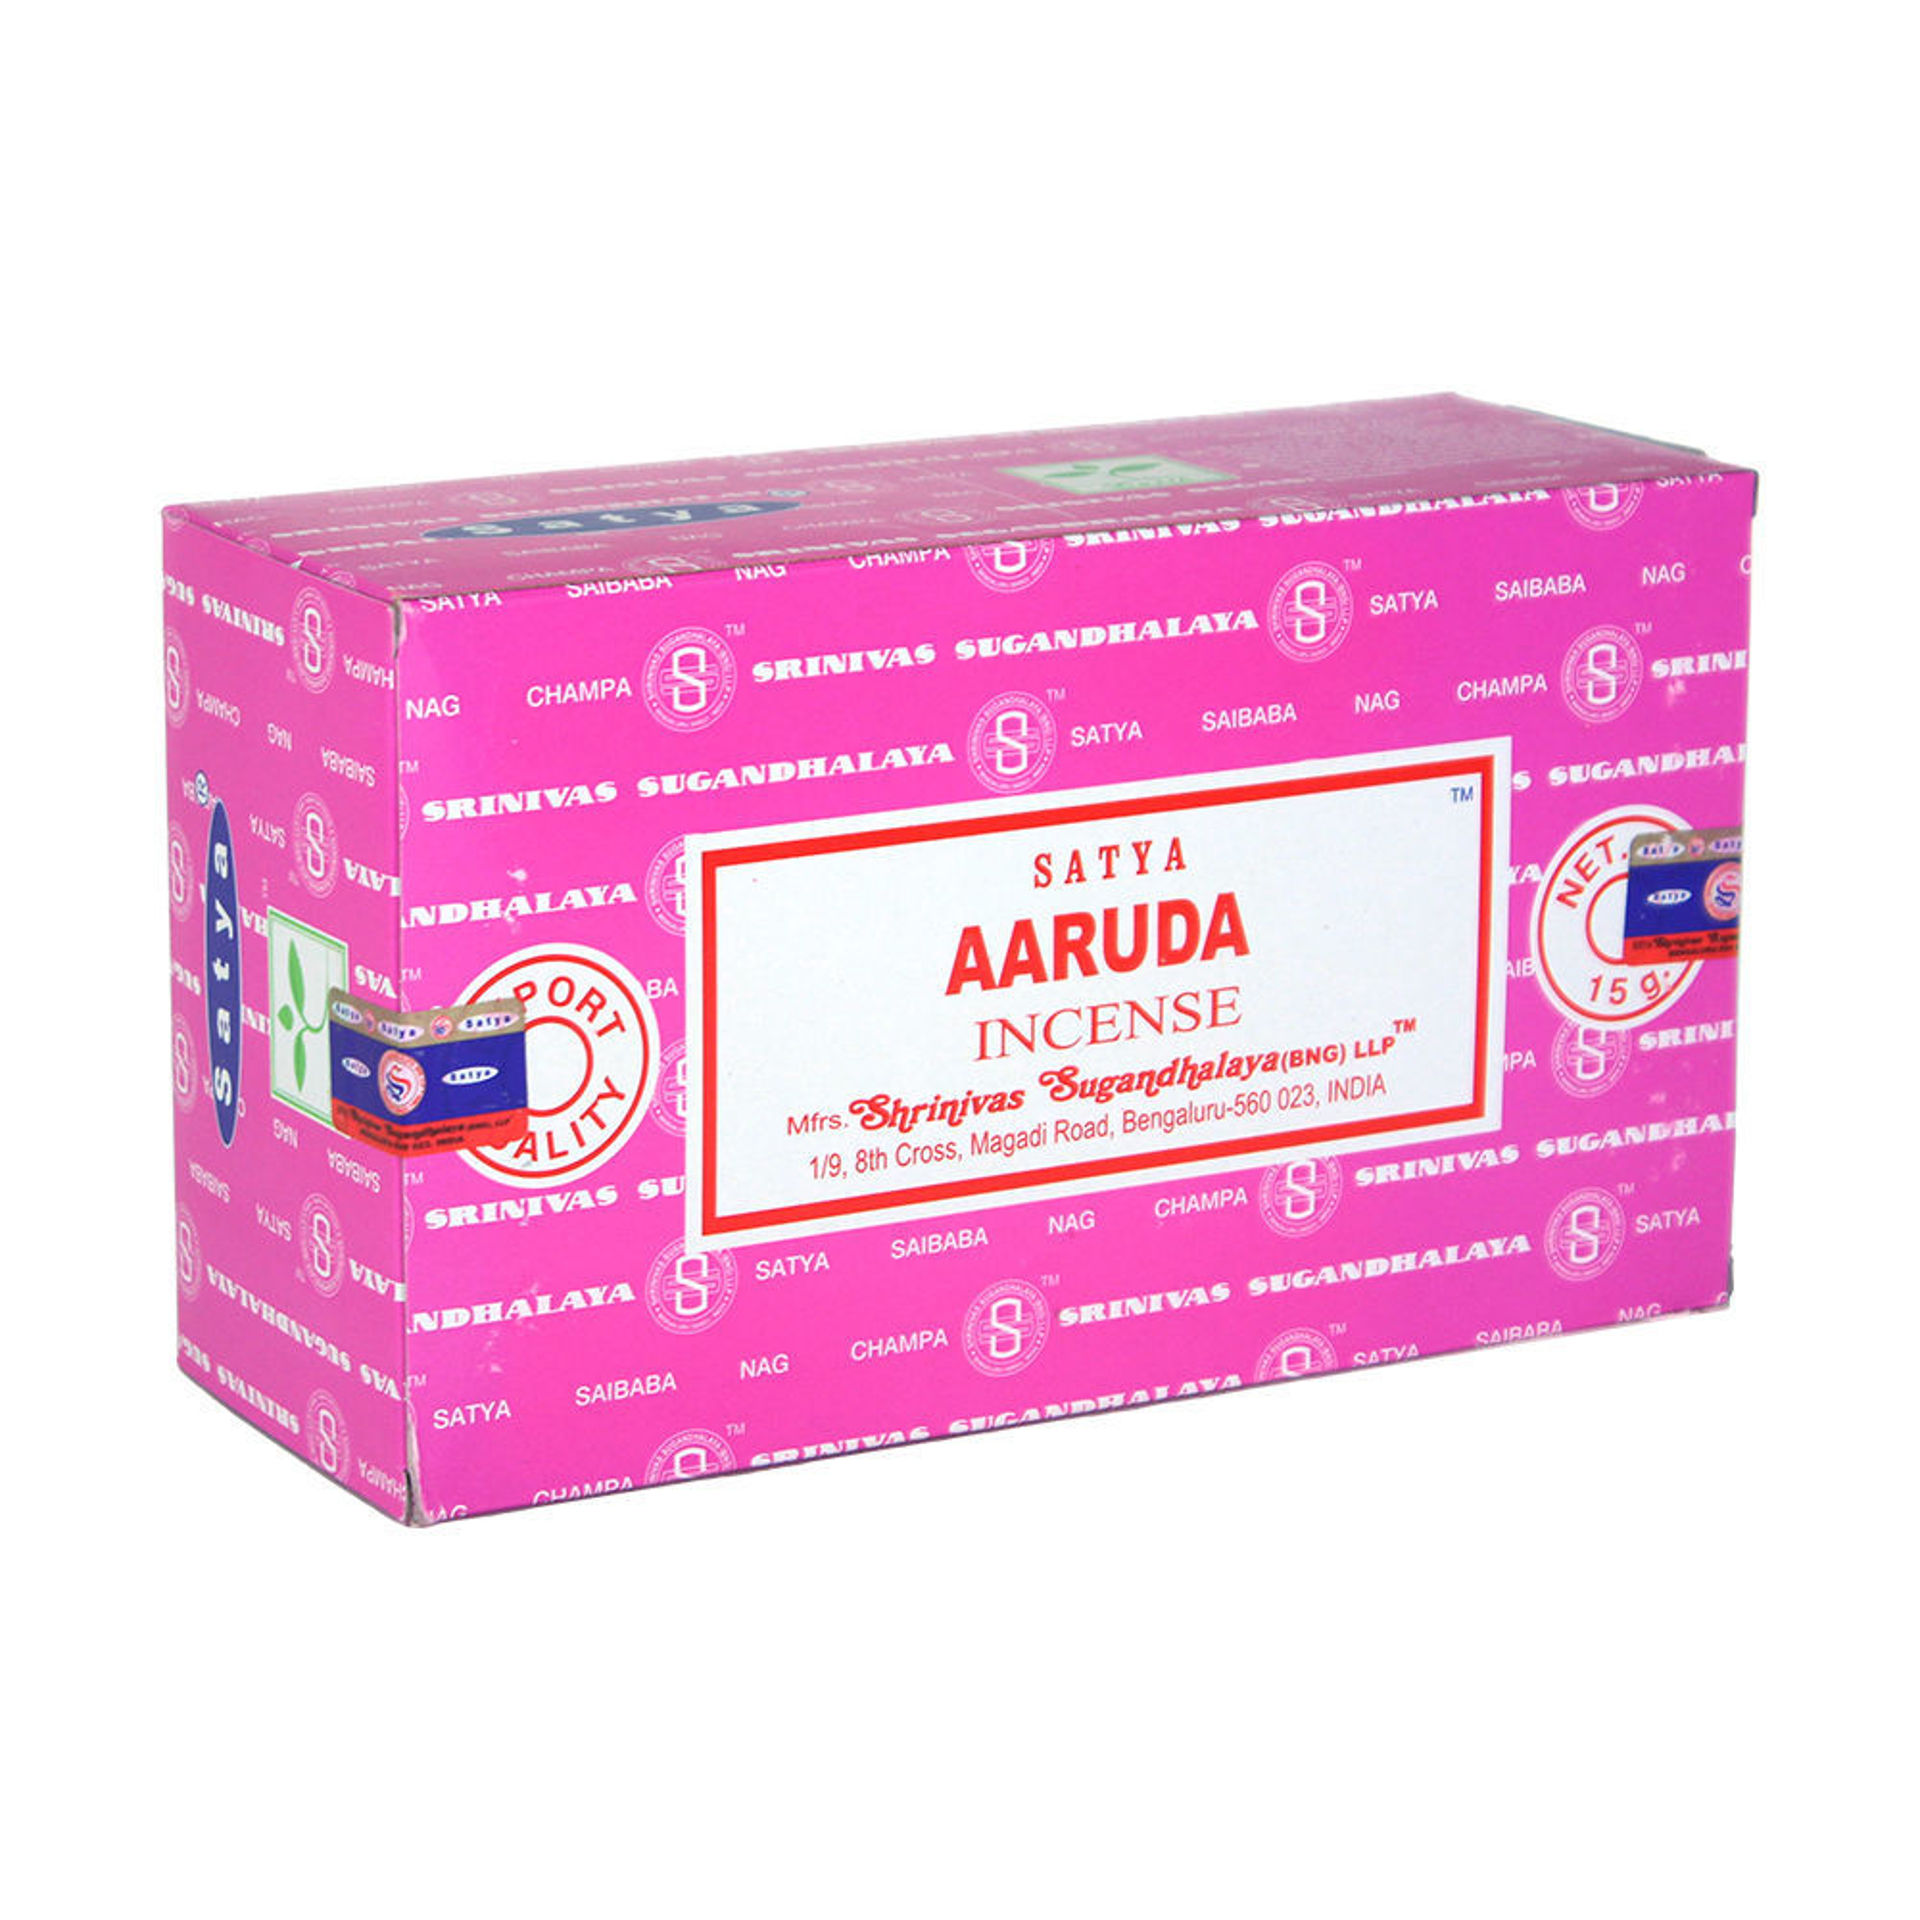 Picture of Aaruda Incense - 15 g (12-Pack Box)